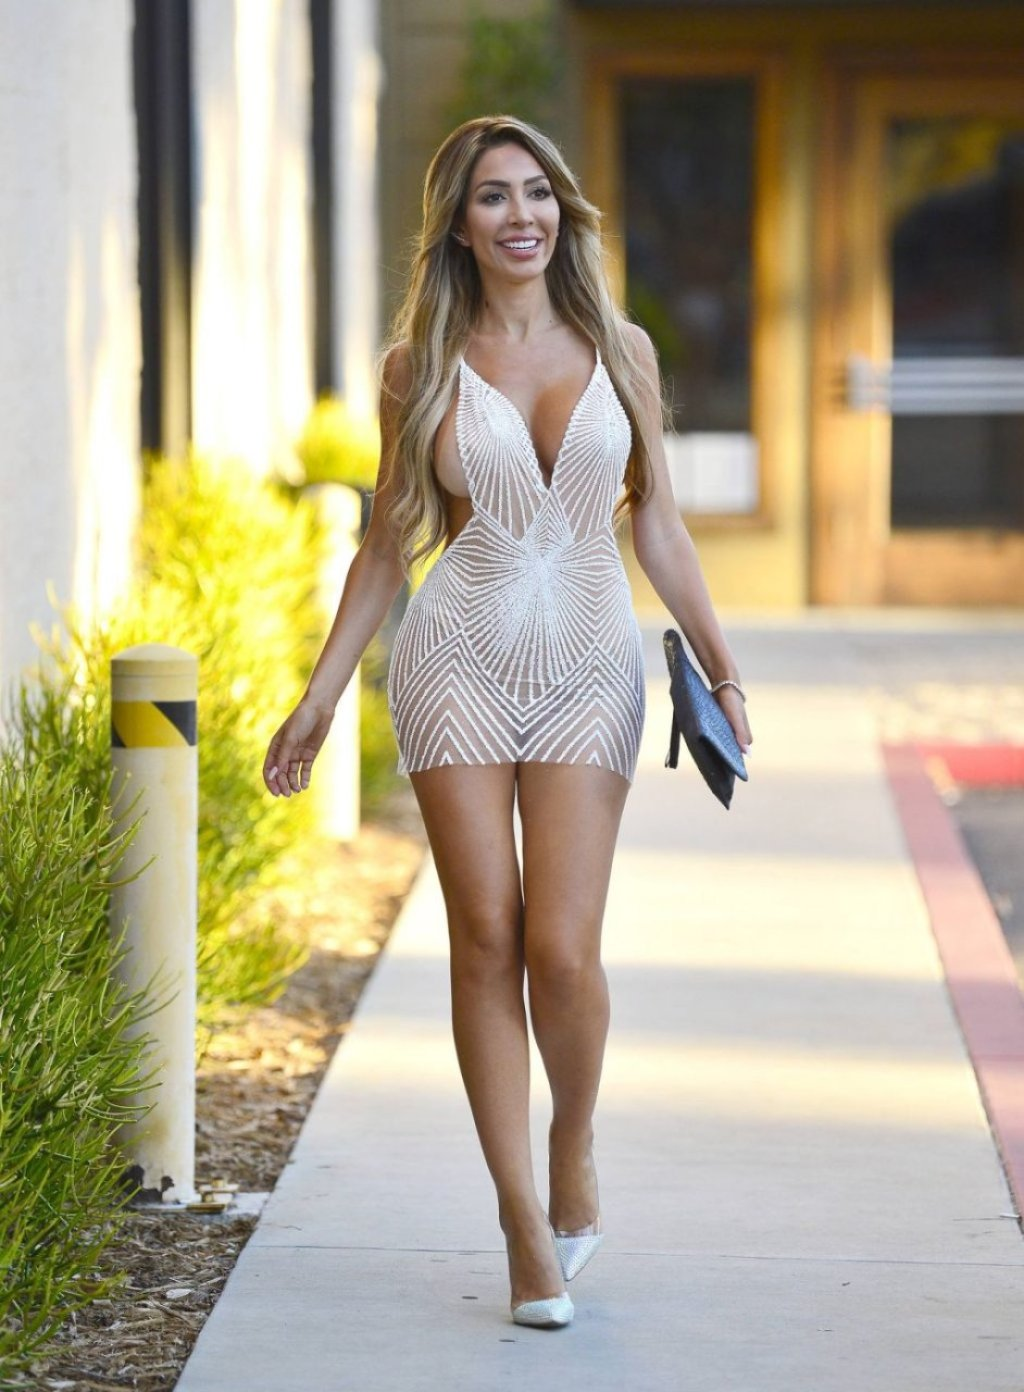 Farrah Abraham See Through (13 Photos)